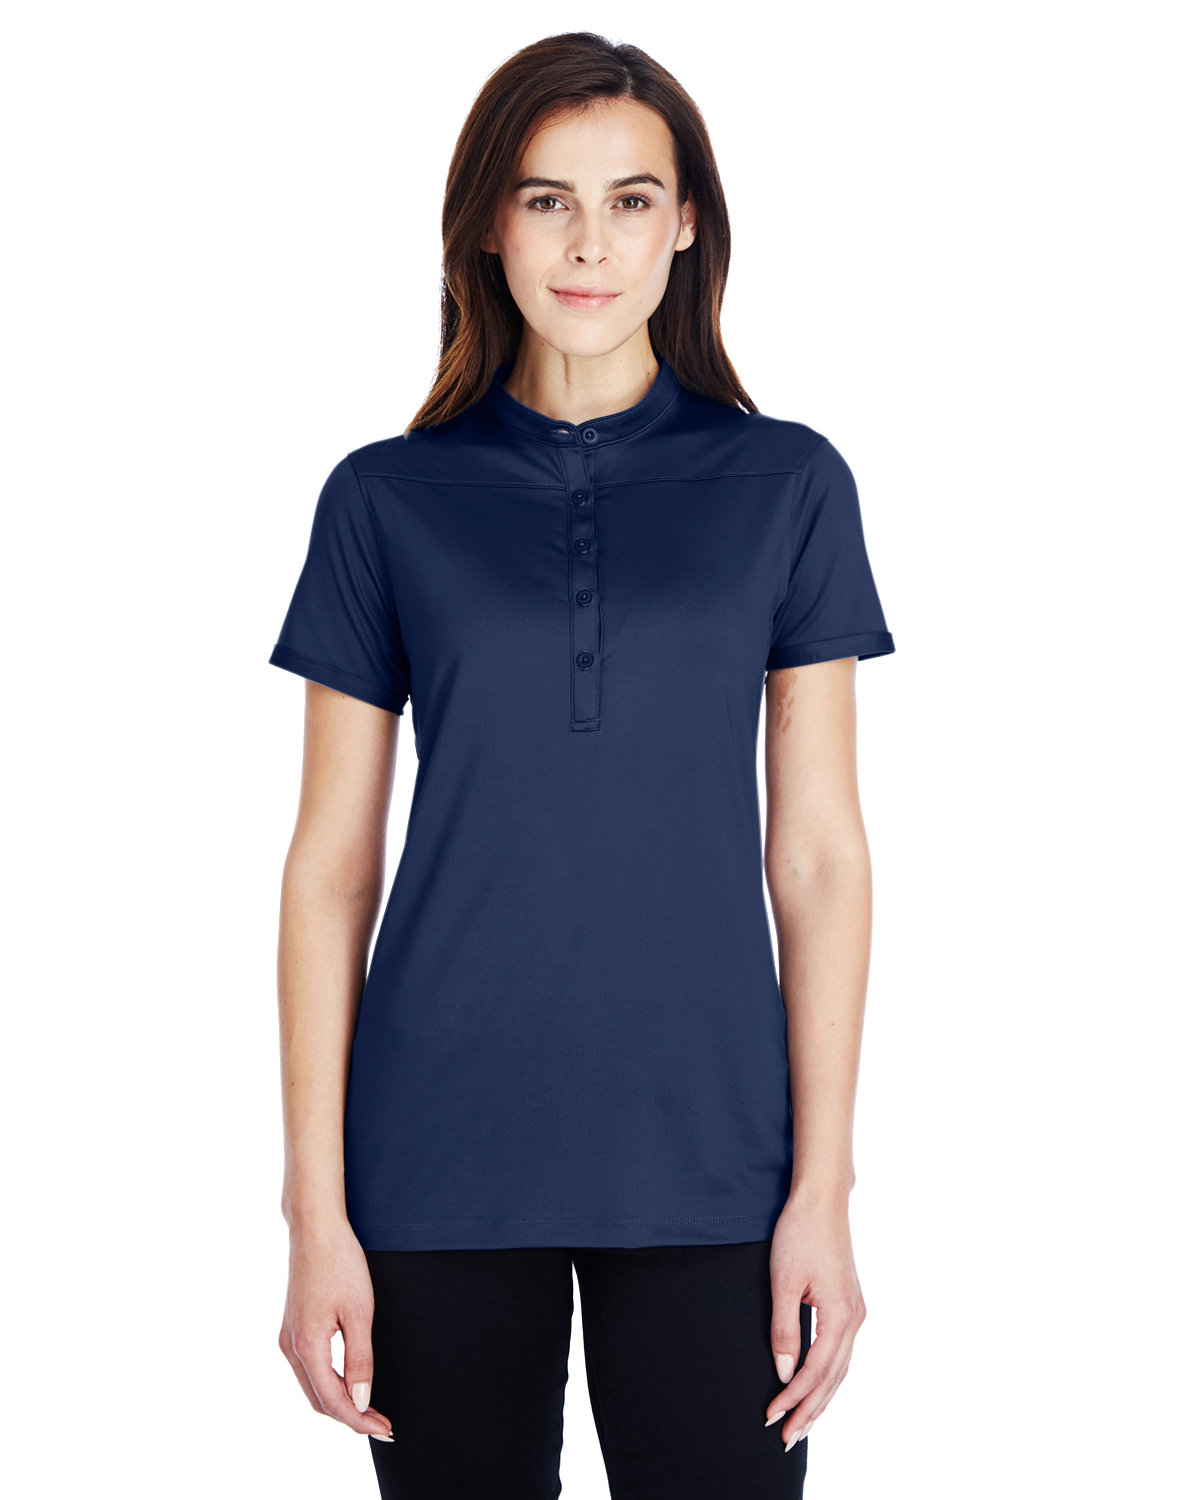 Under Armour SuperSale Ladies' Corporate Performance Polo 2.0 MID NVY/ WHT _410